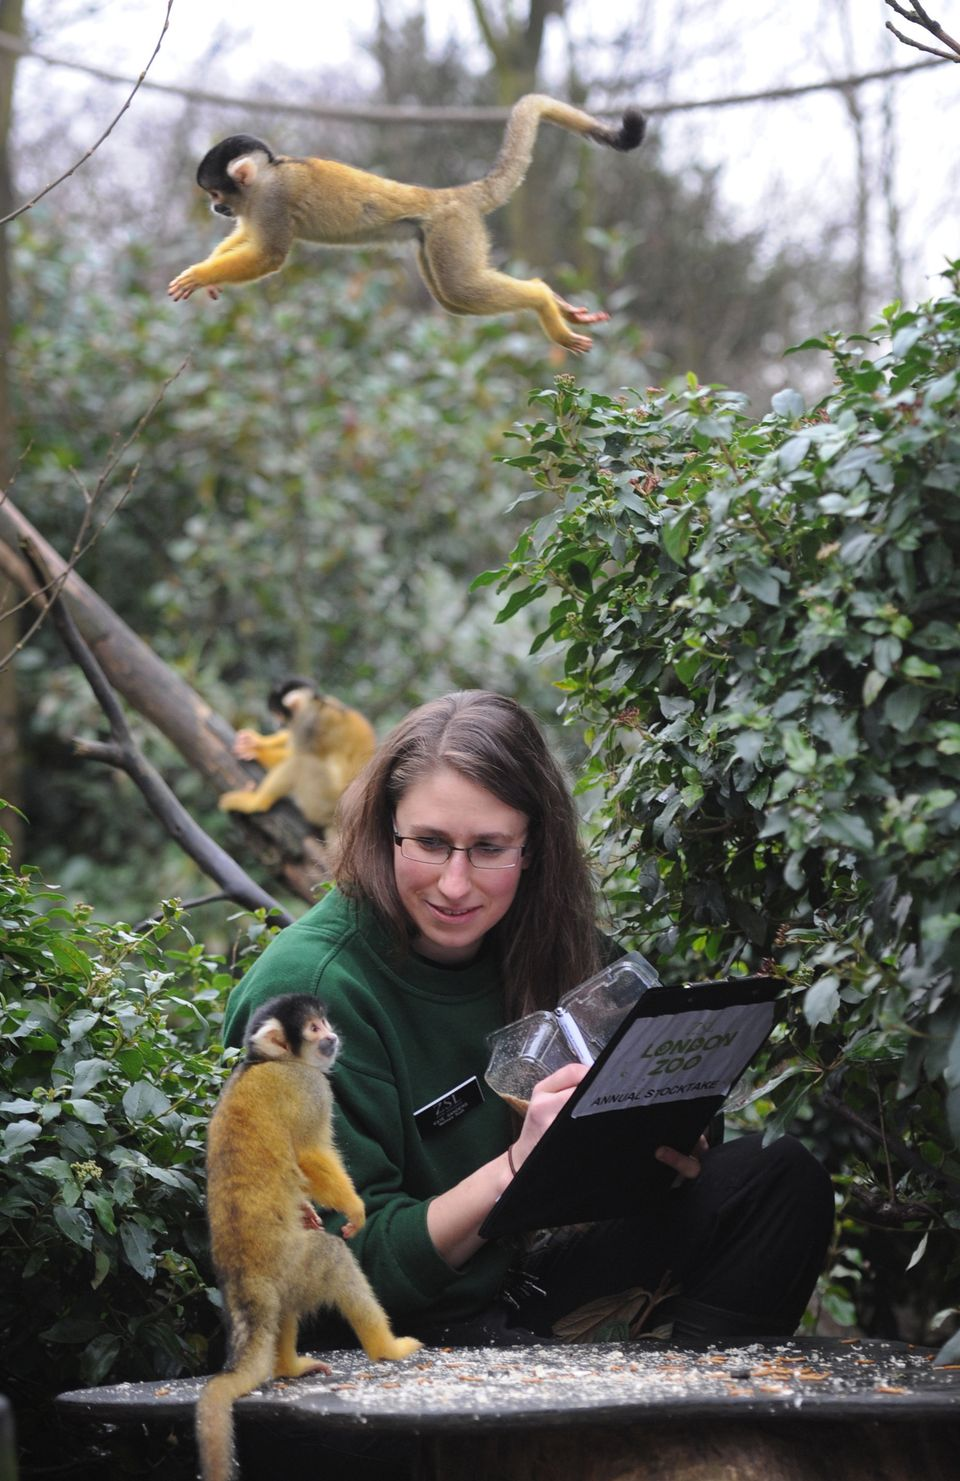 Zoo keeper Kate Sanders inside the squirrel monkey enclosure at London Zoo during the annual stocktake of animals.